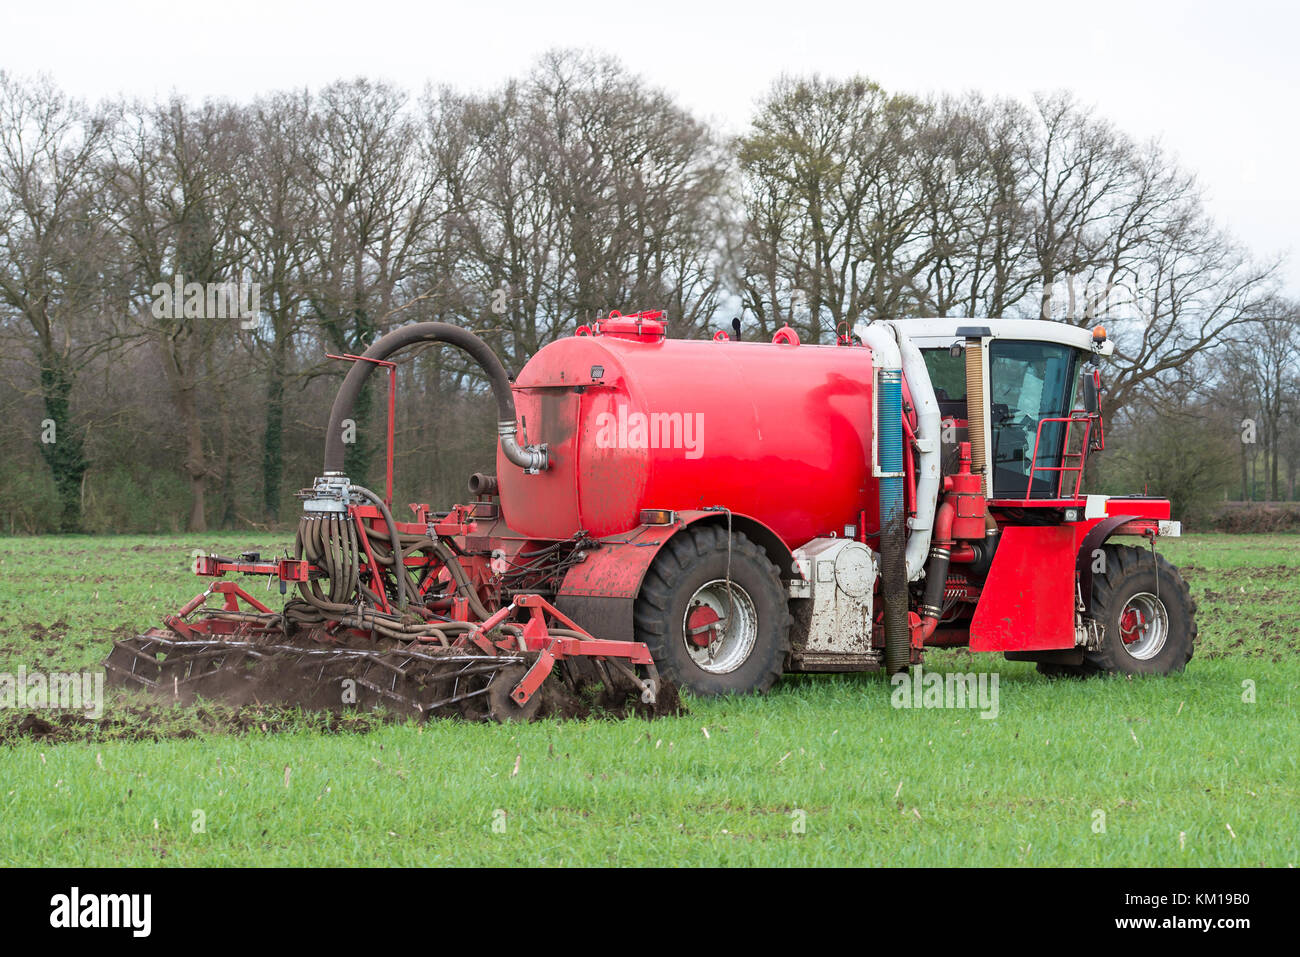 Injection of liquid manure with arable manure spreader in the Netherlands. - Stock Image